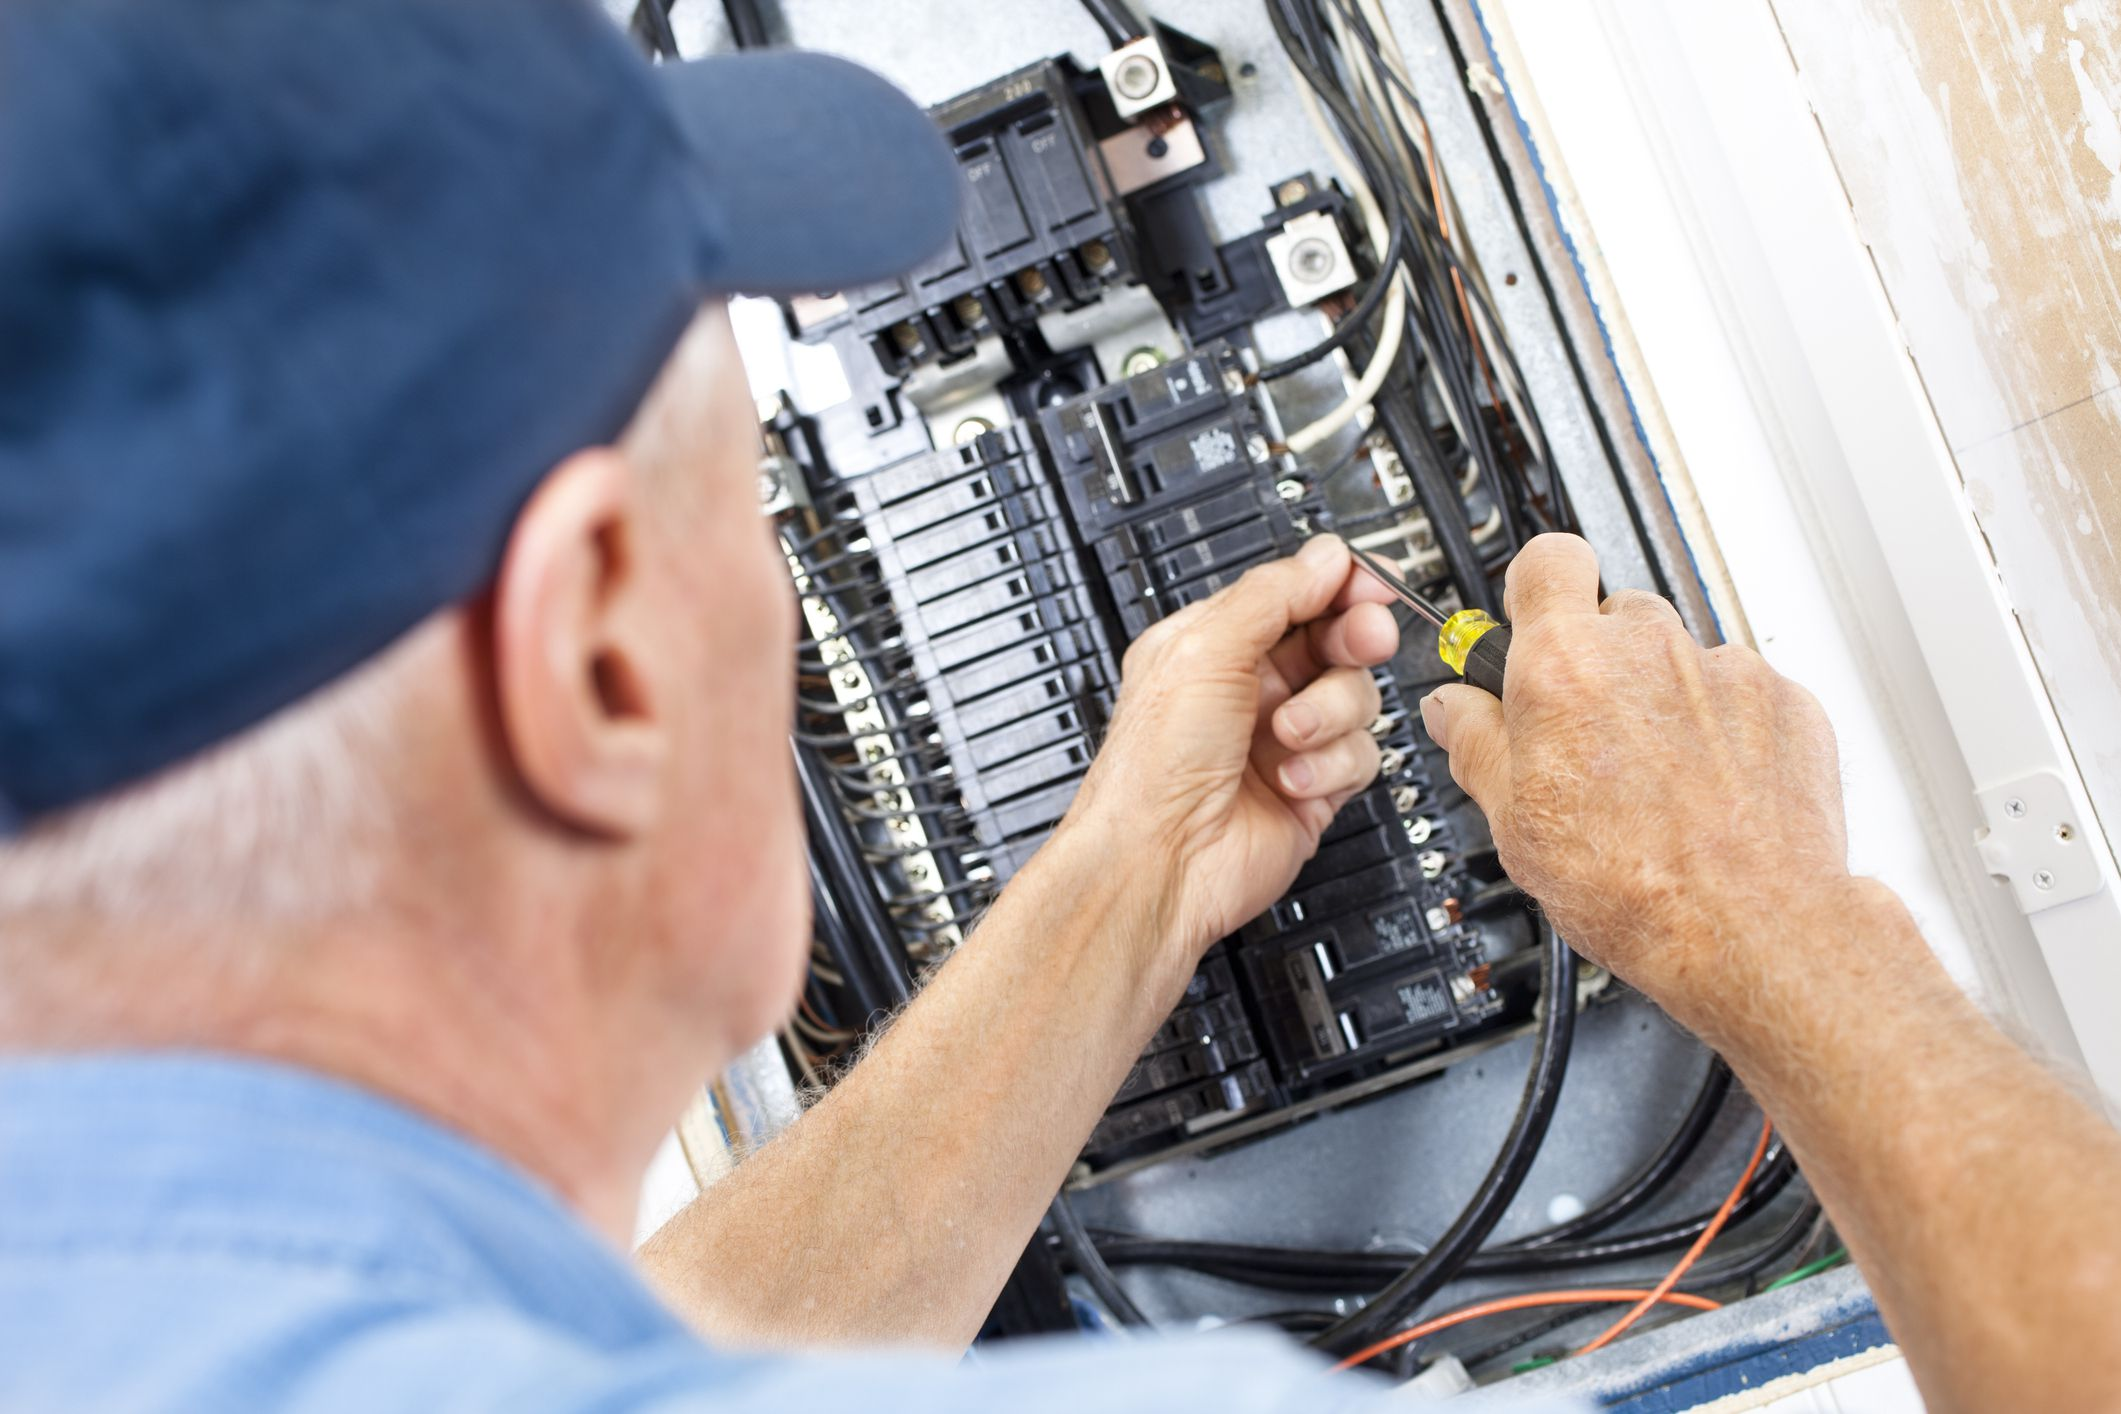 How To Find The Electrical Service Size Of Your Home Do House Wiring Load Calculation